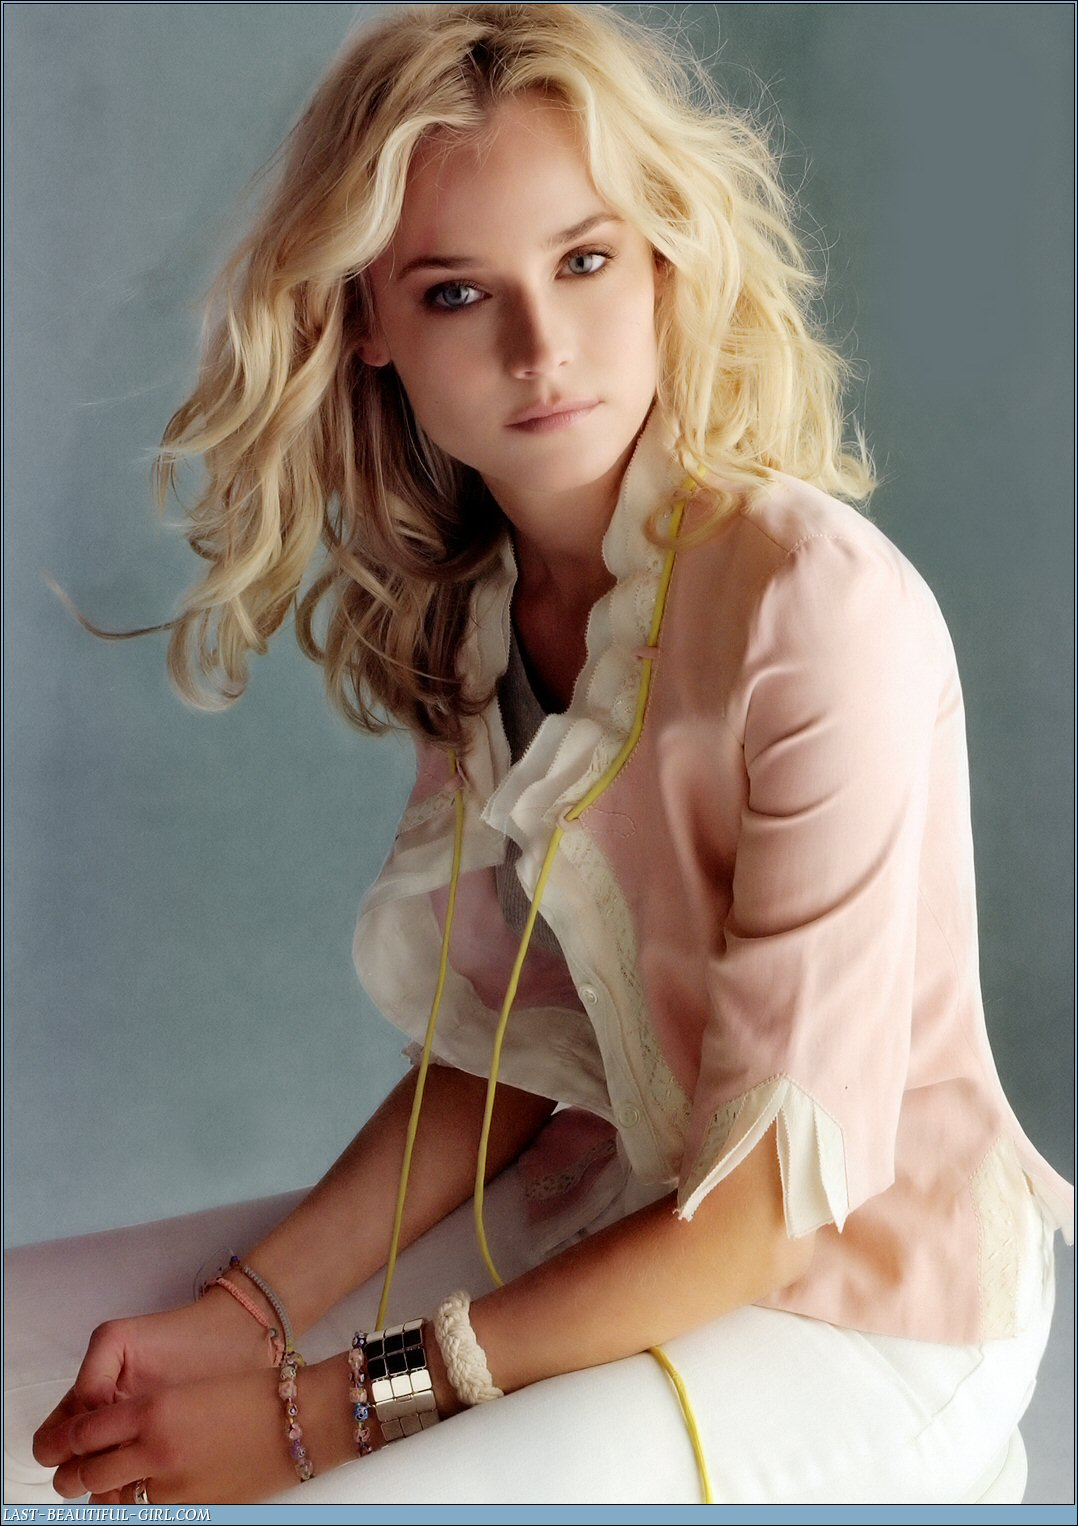 Diane Kruger All Movies List | 6k pics